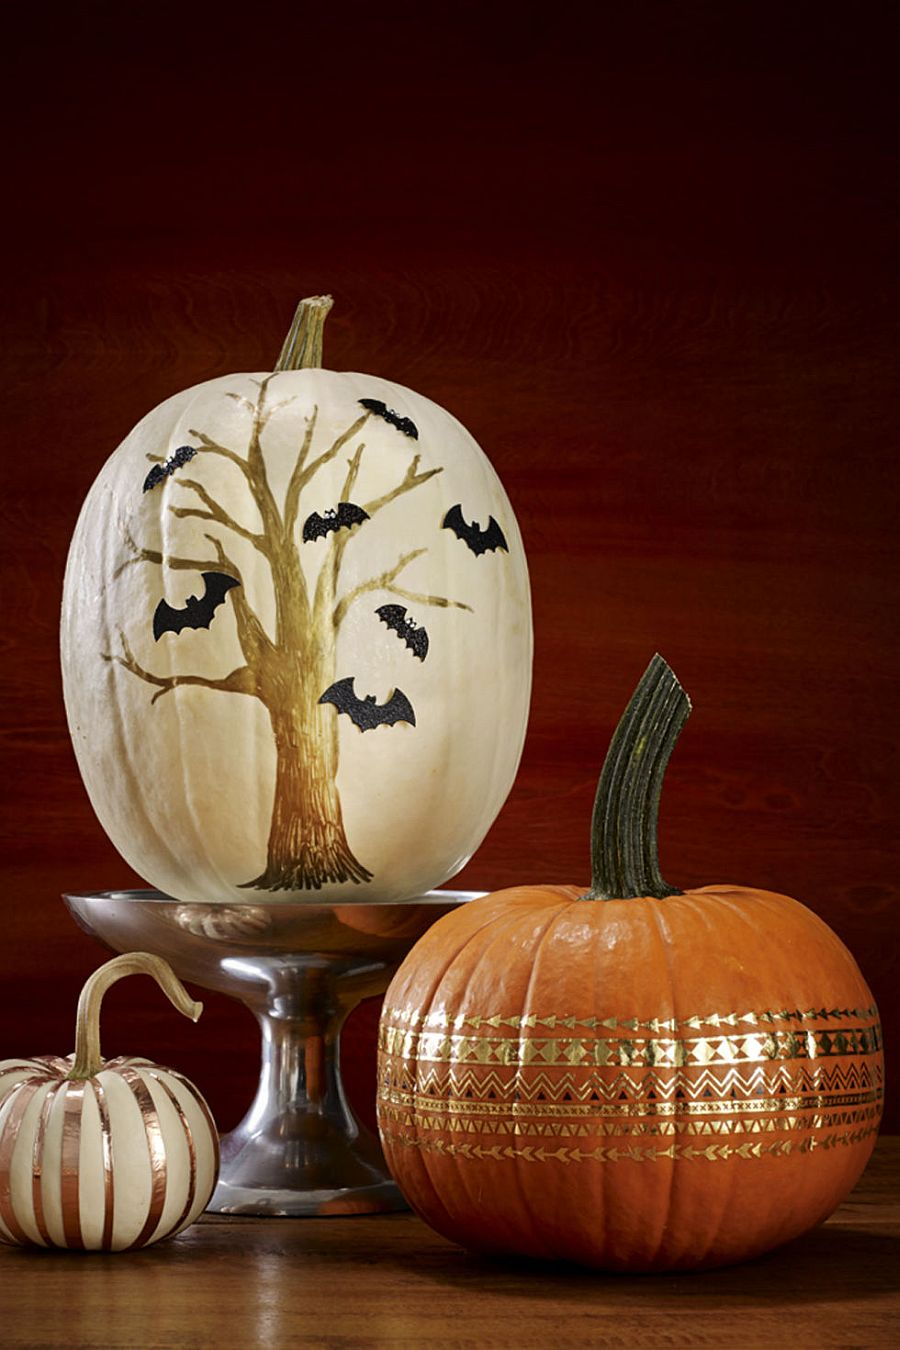 Find a touch of spooky charm with a custom-painted pumpkin that is perfect for Halloween